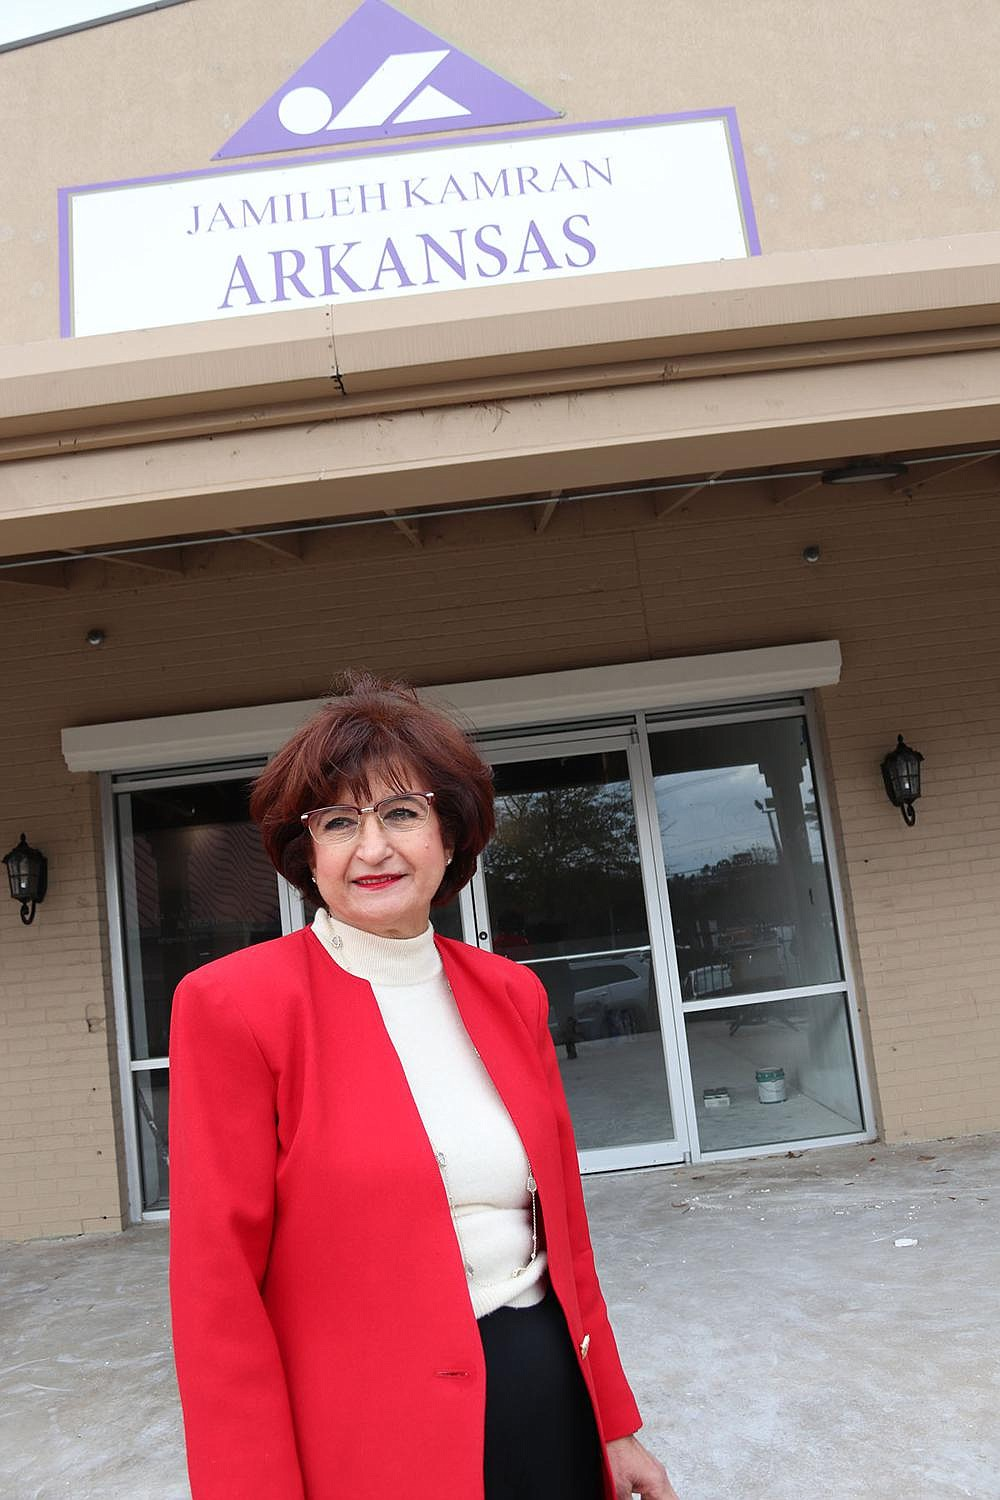 Jamileh Kamran shows off the new space for Arkansas Fashion School. The school is moving from its old location on Kavanaugh Boulevard, where for years Kamran ran her design studio and retail shop.